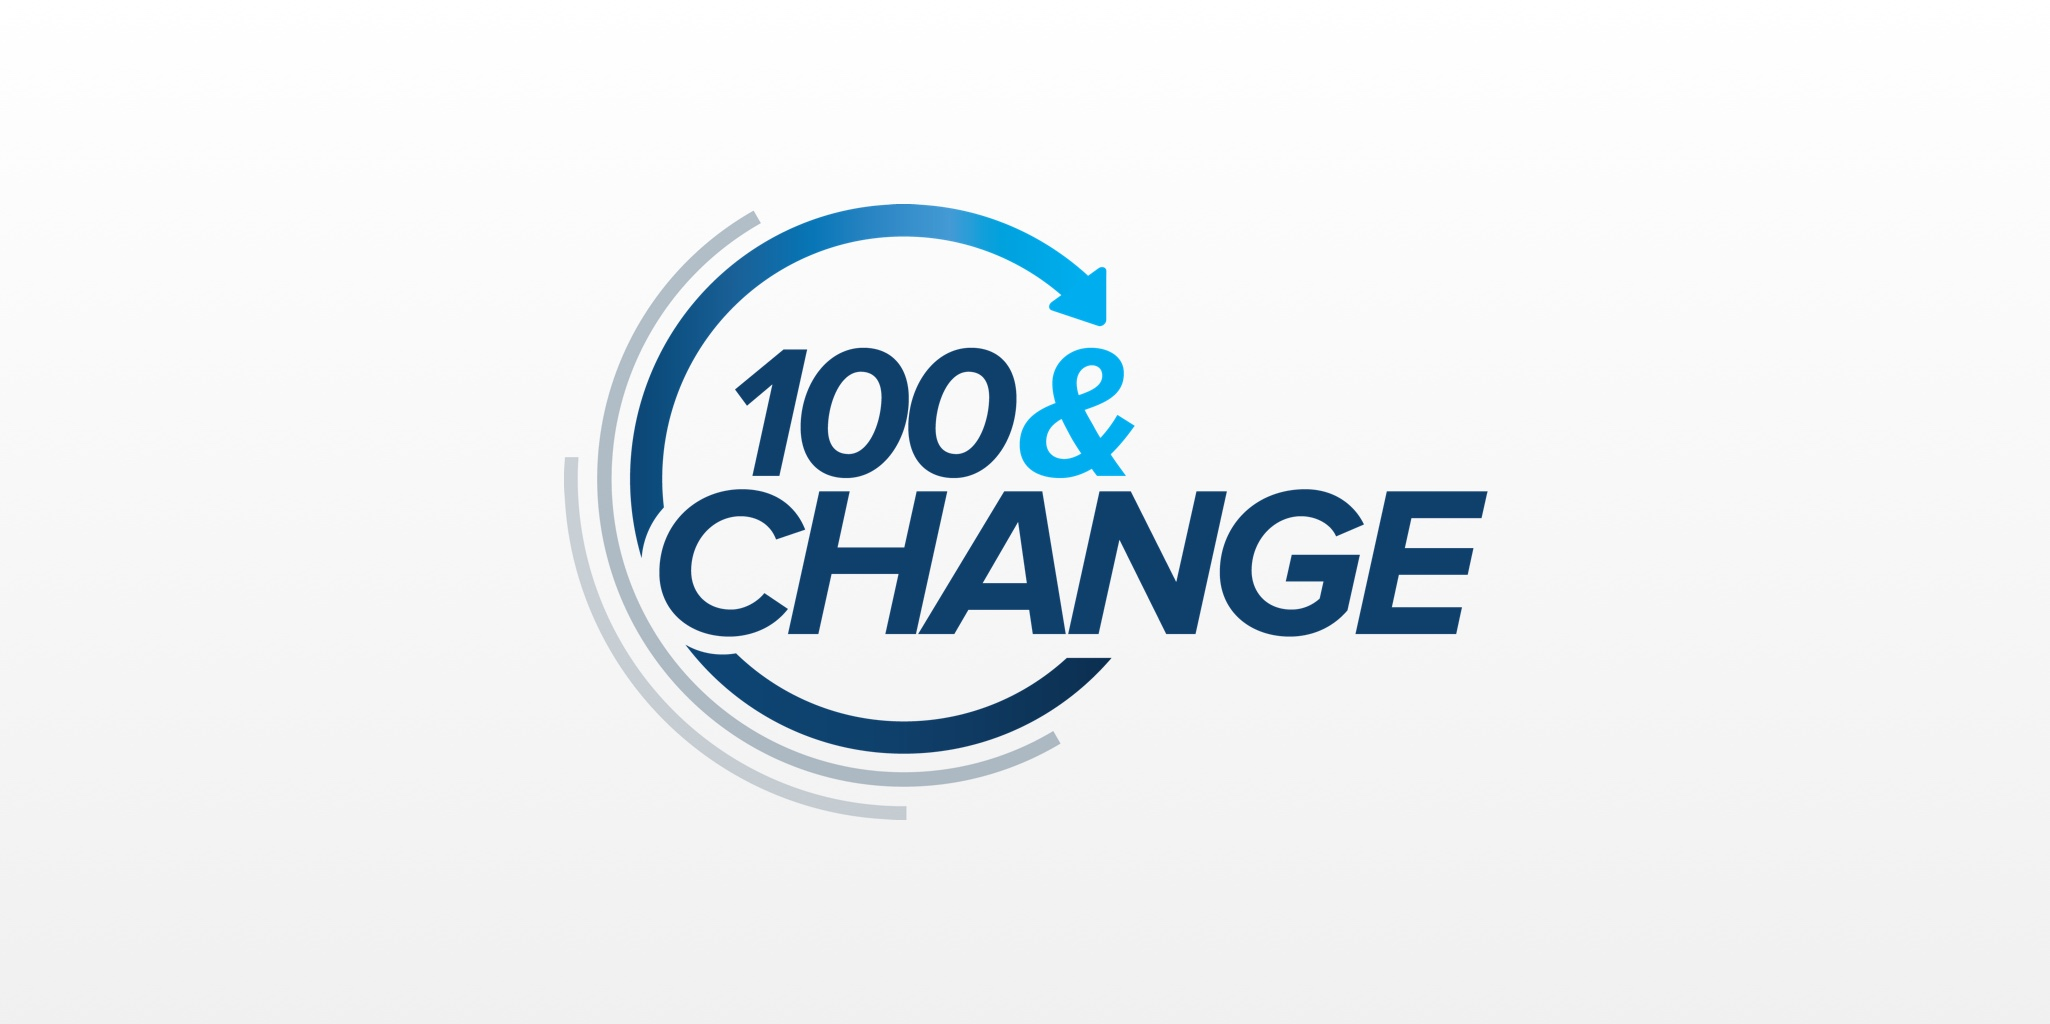 100&Change - Lobbying Policy